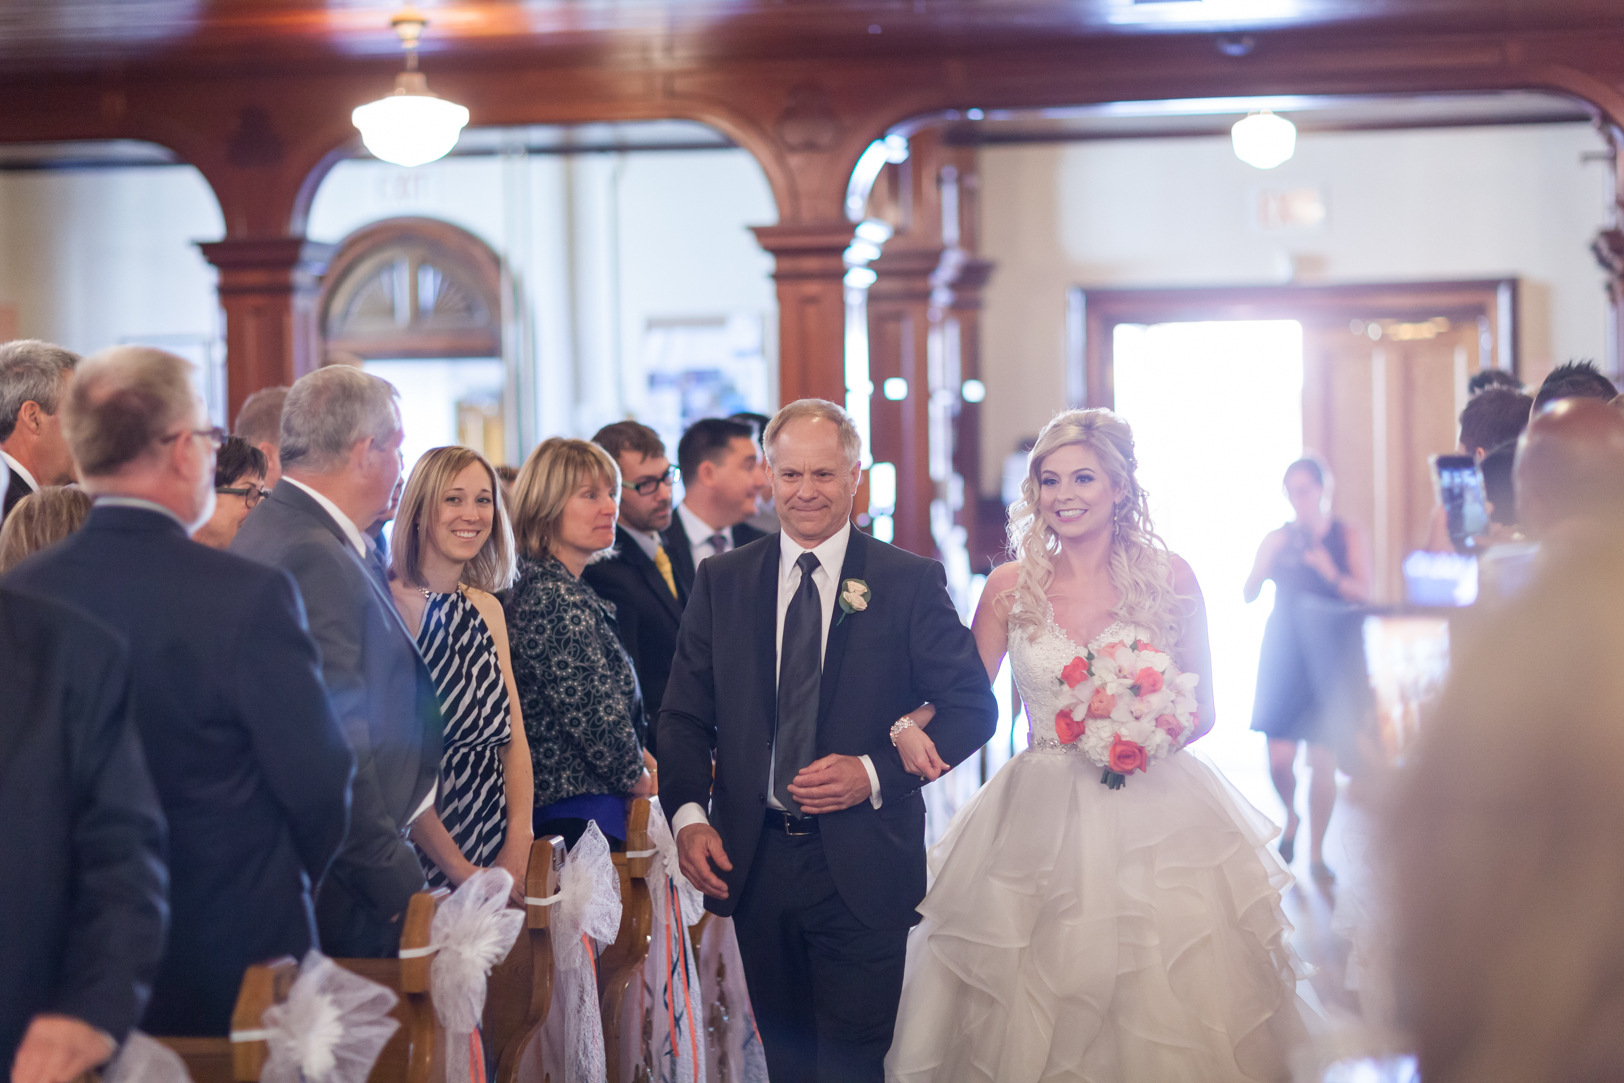 wedding procession photos